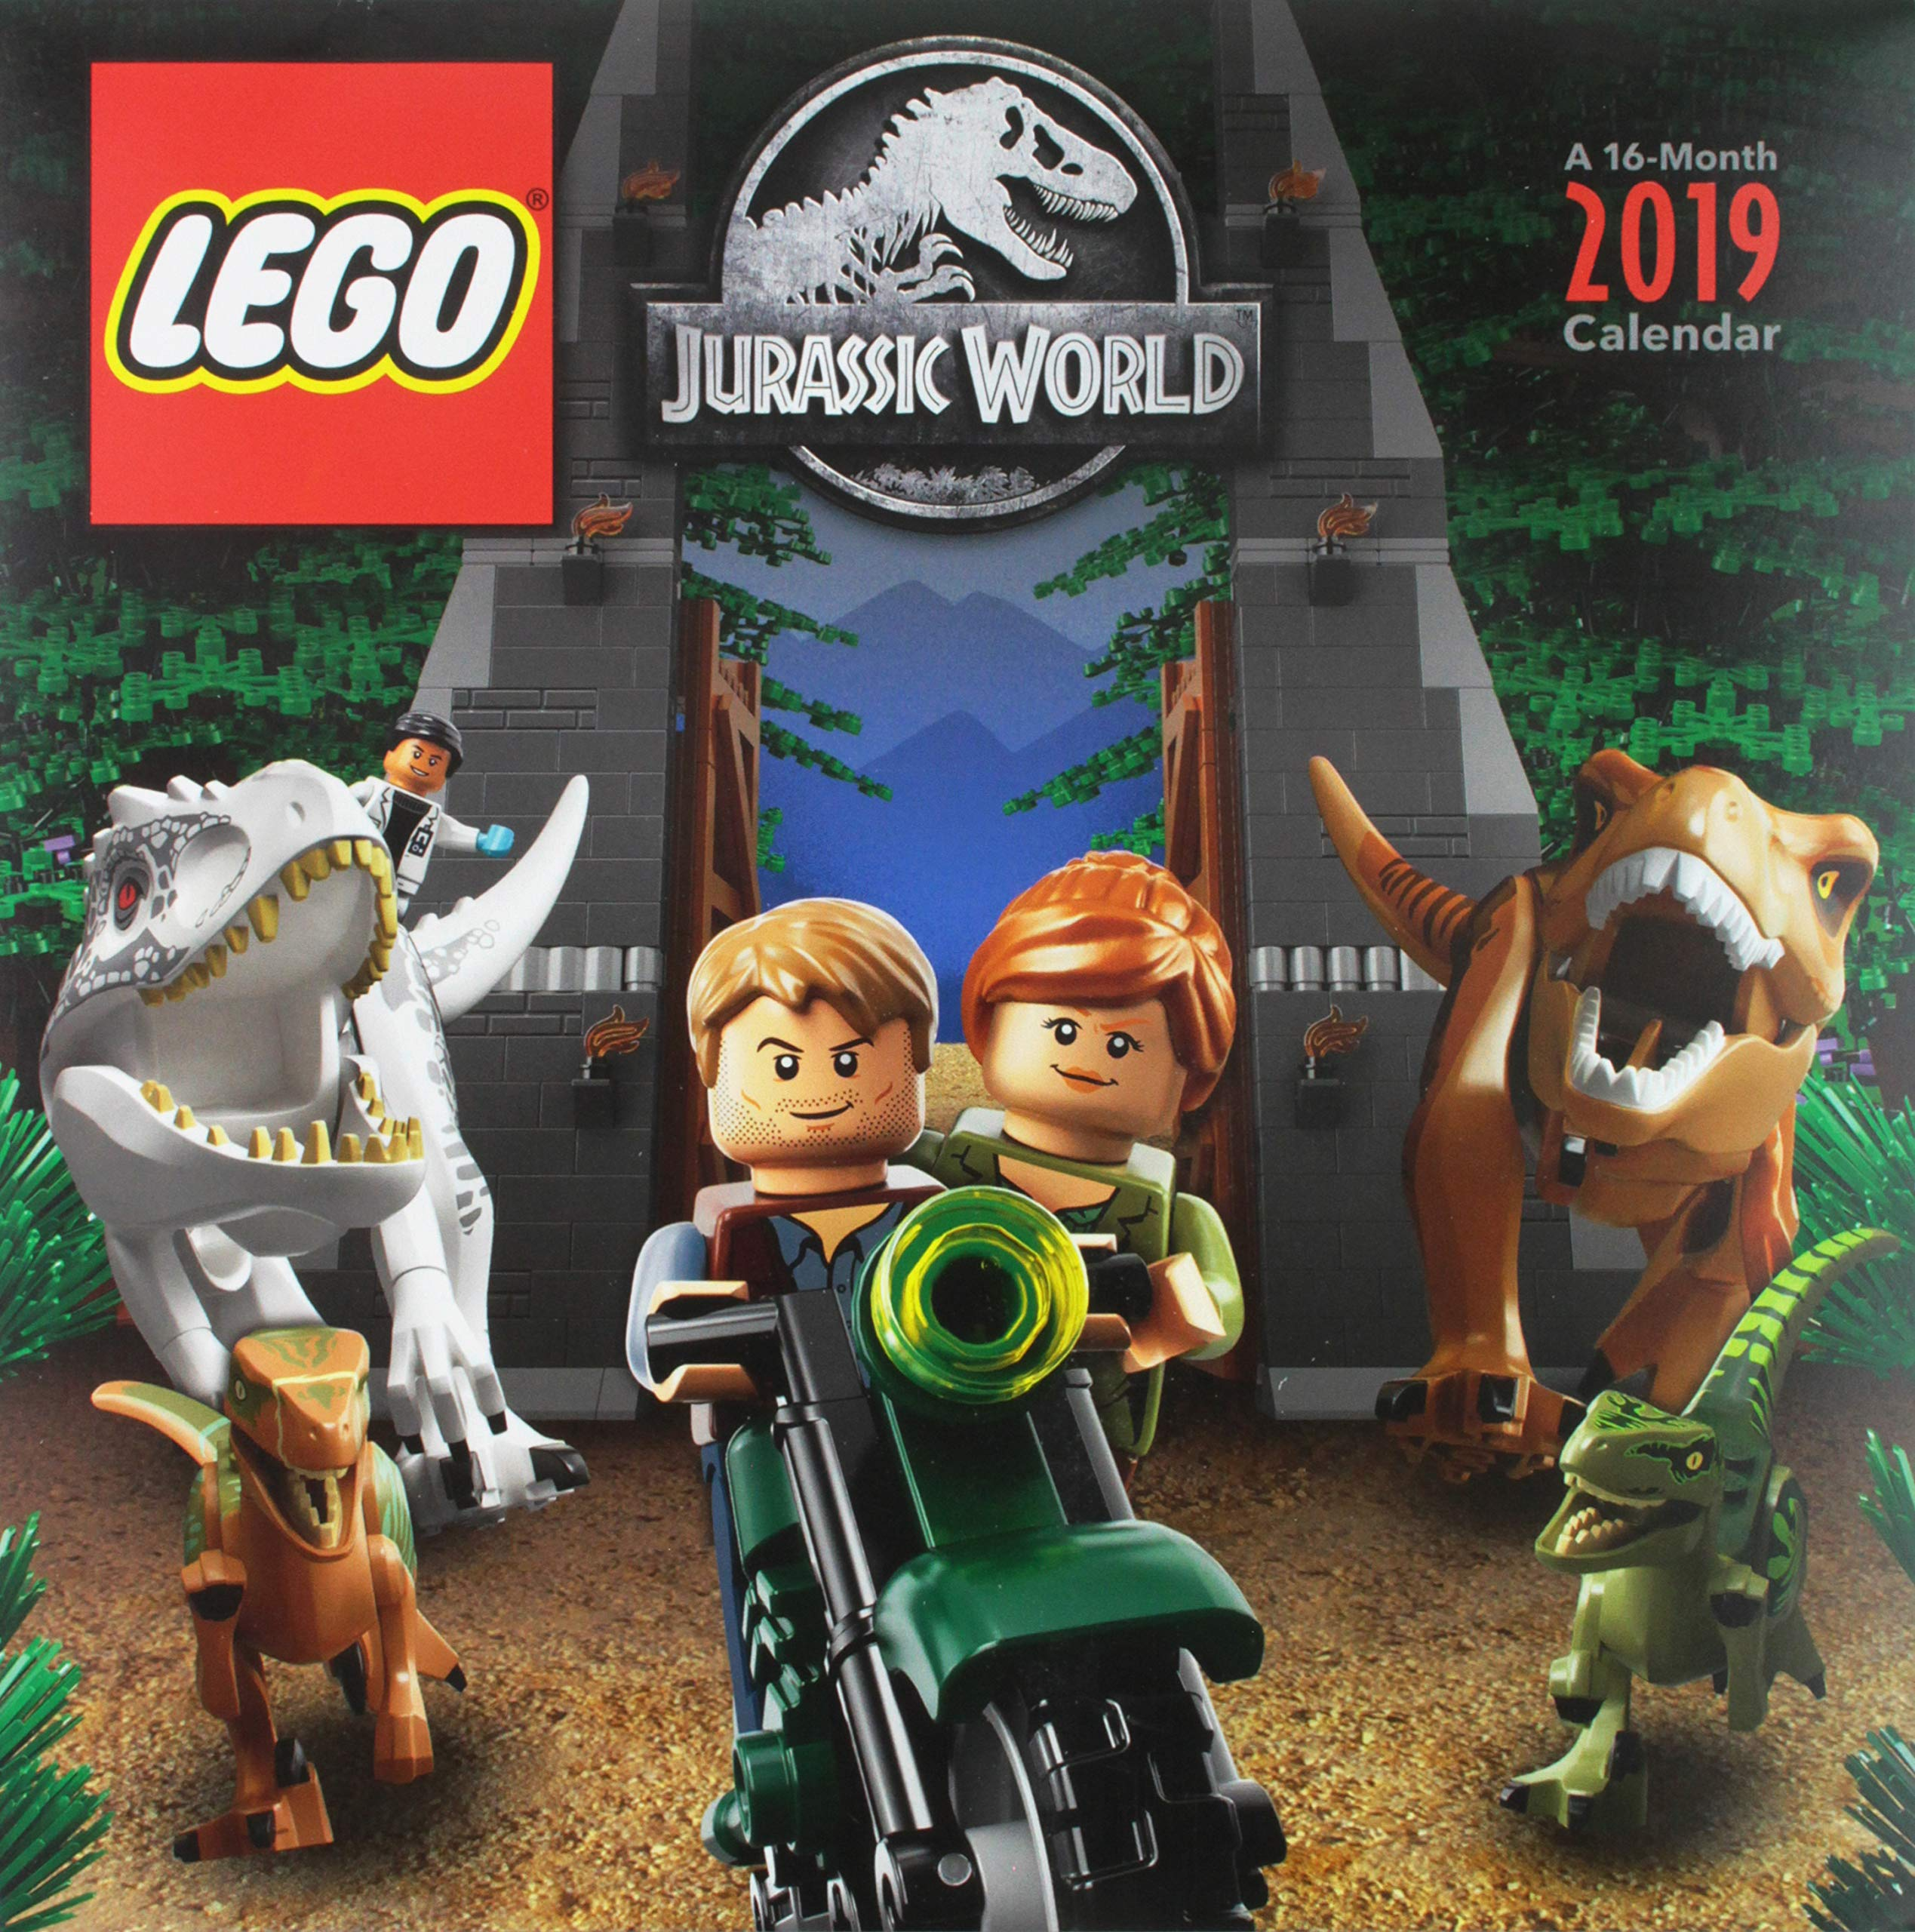 CalendarAmazon esTrends Lego Jurassic Intl Corp World 2019 UVpSzMq